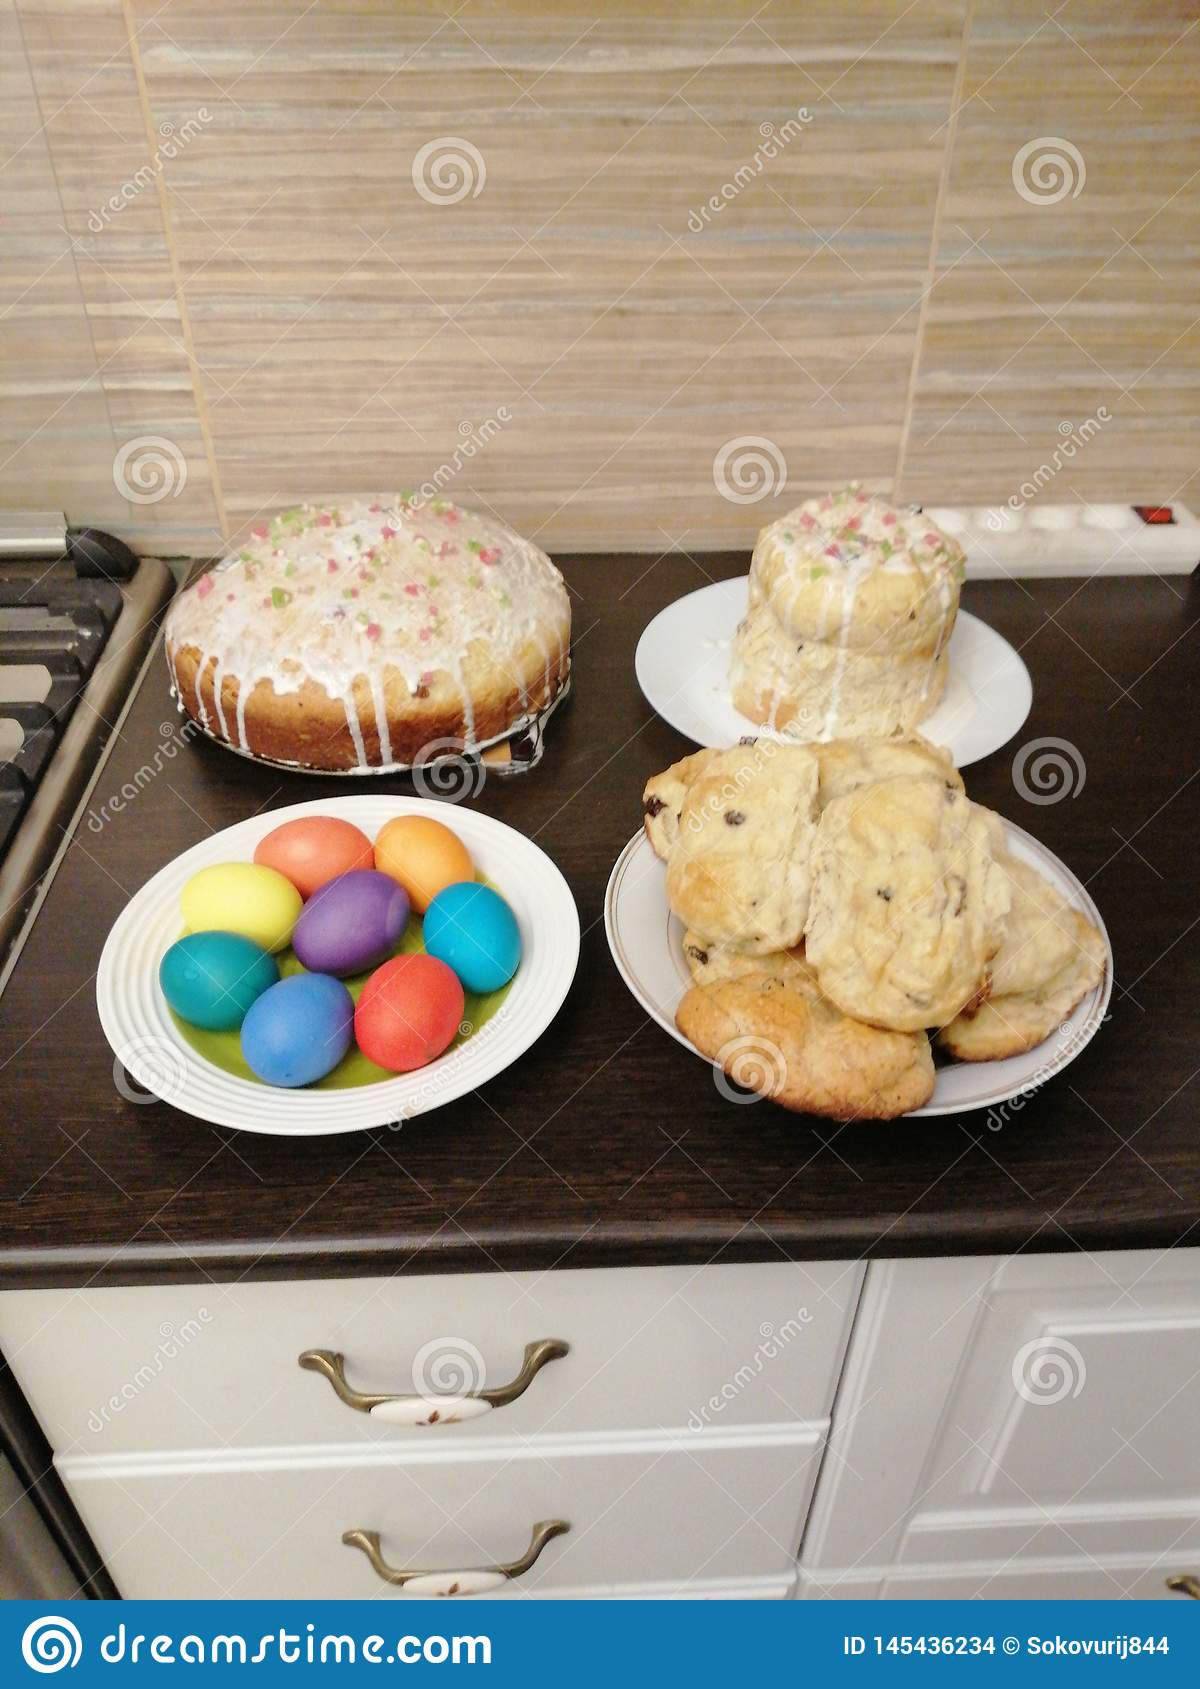 Easter eggs, pies and buns with raisins